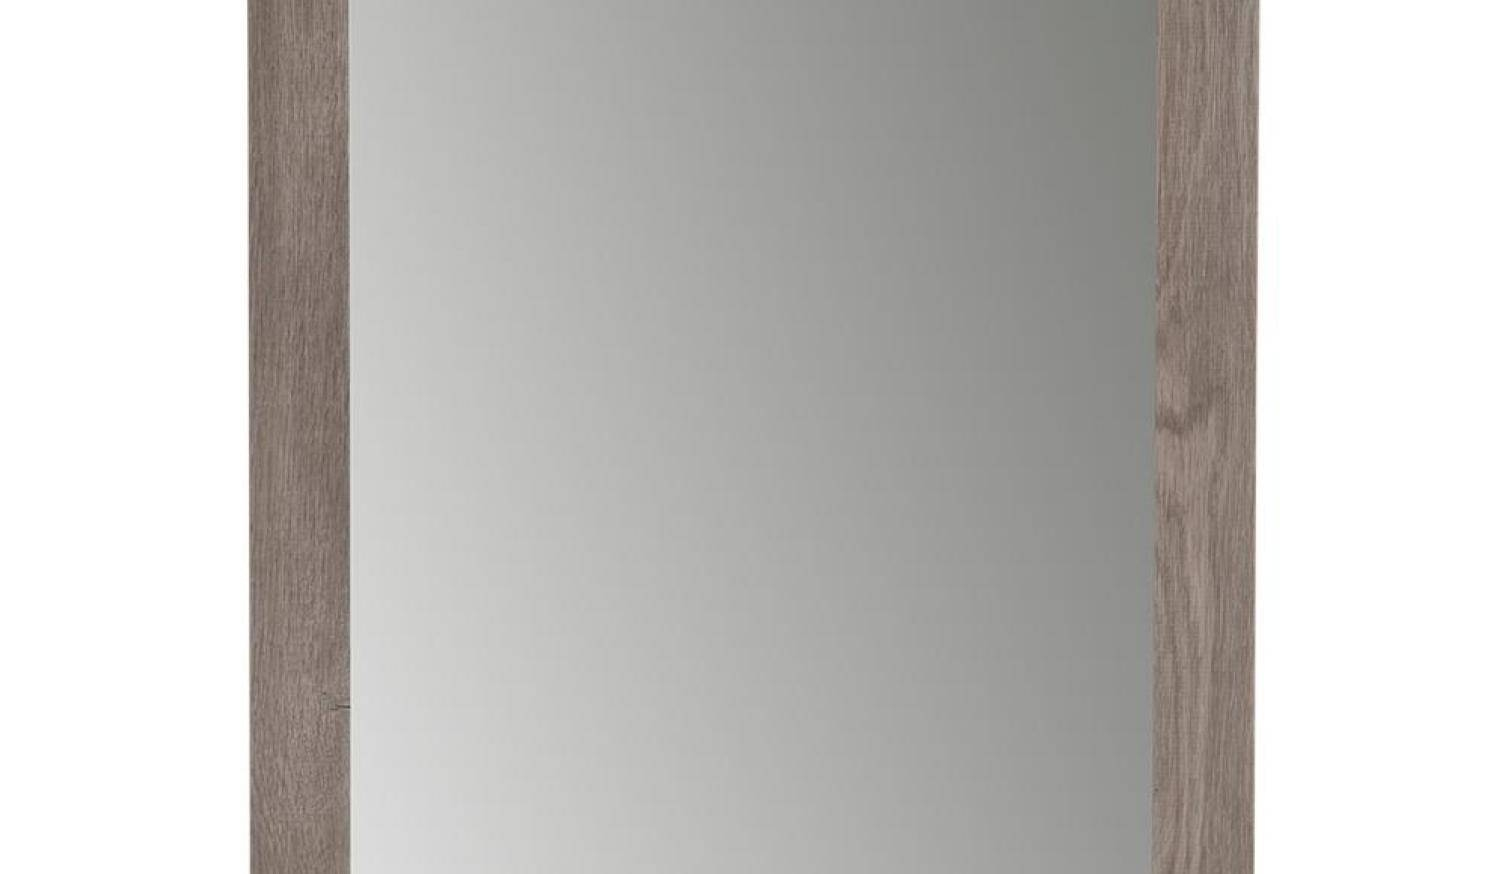 Mirror : Oak Framed Wall Mirrors Beautiful Large Oak Framed Wall regarding Rustic Oak Framed Mirrors (Image 14 of 15)